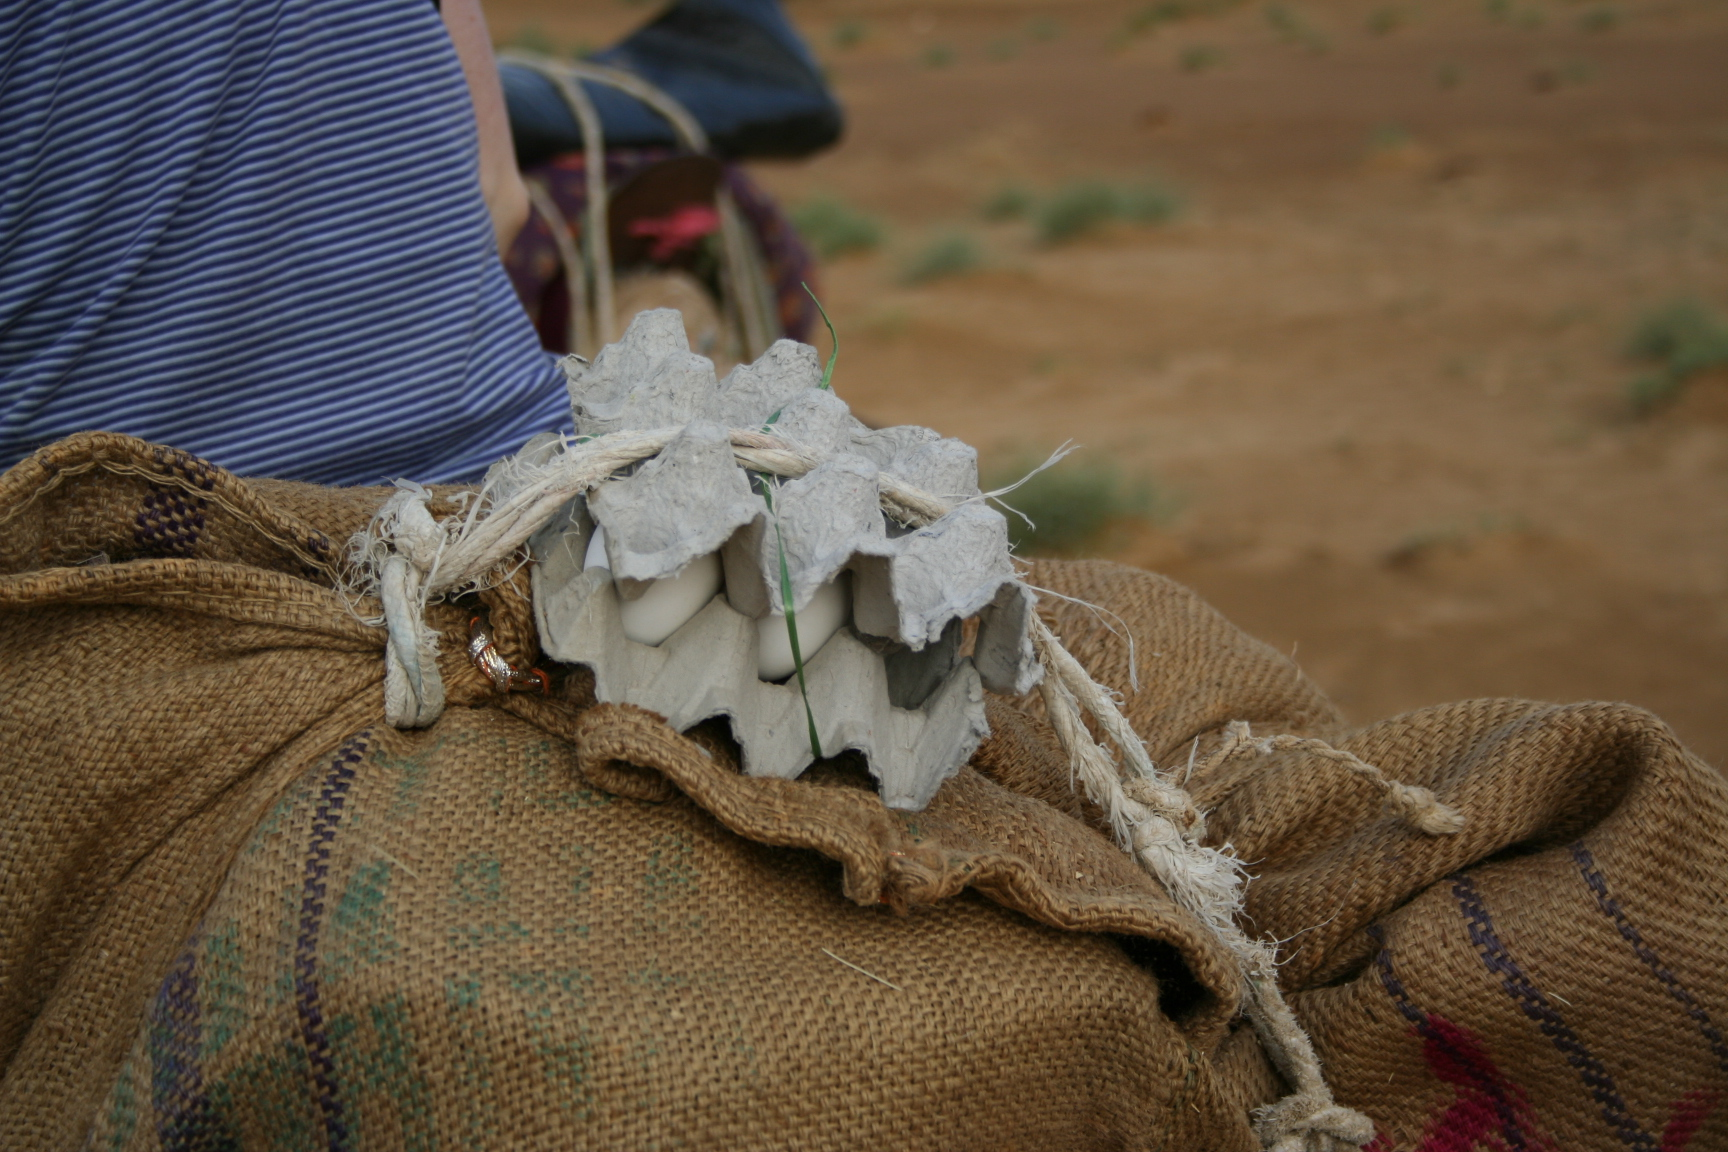 Jaisalmer - how to transport eggs in the desert